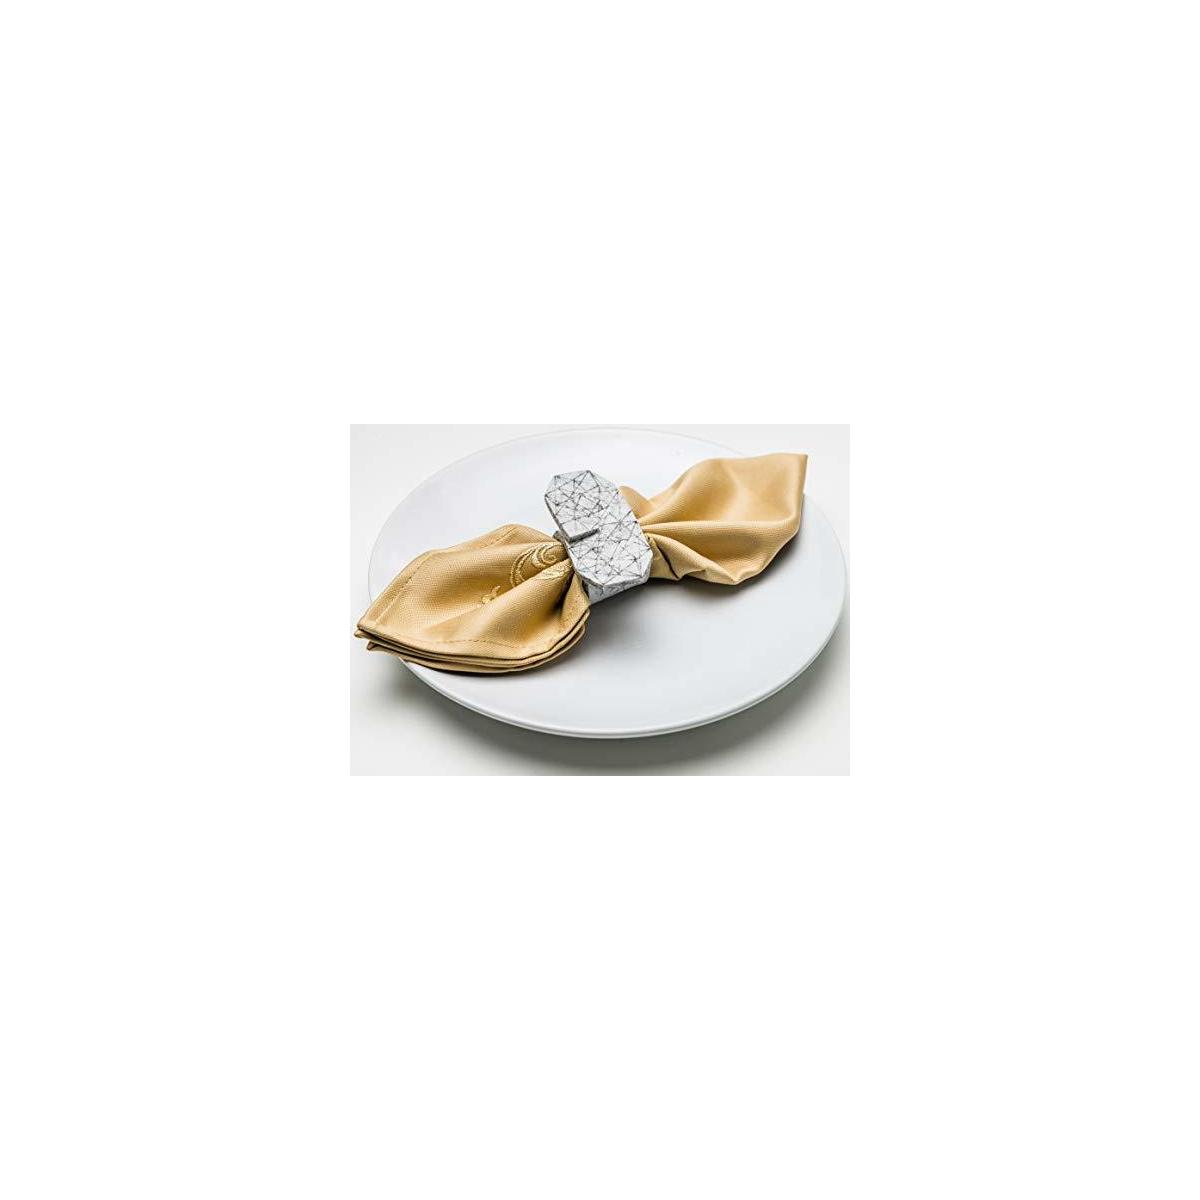 Napkin Ring Set for Wedding